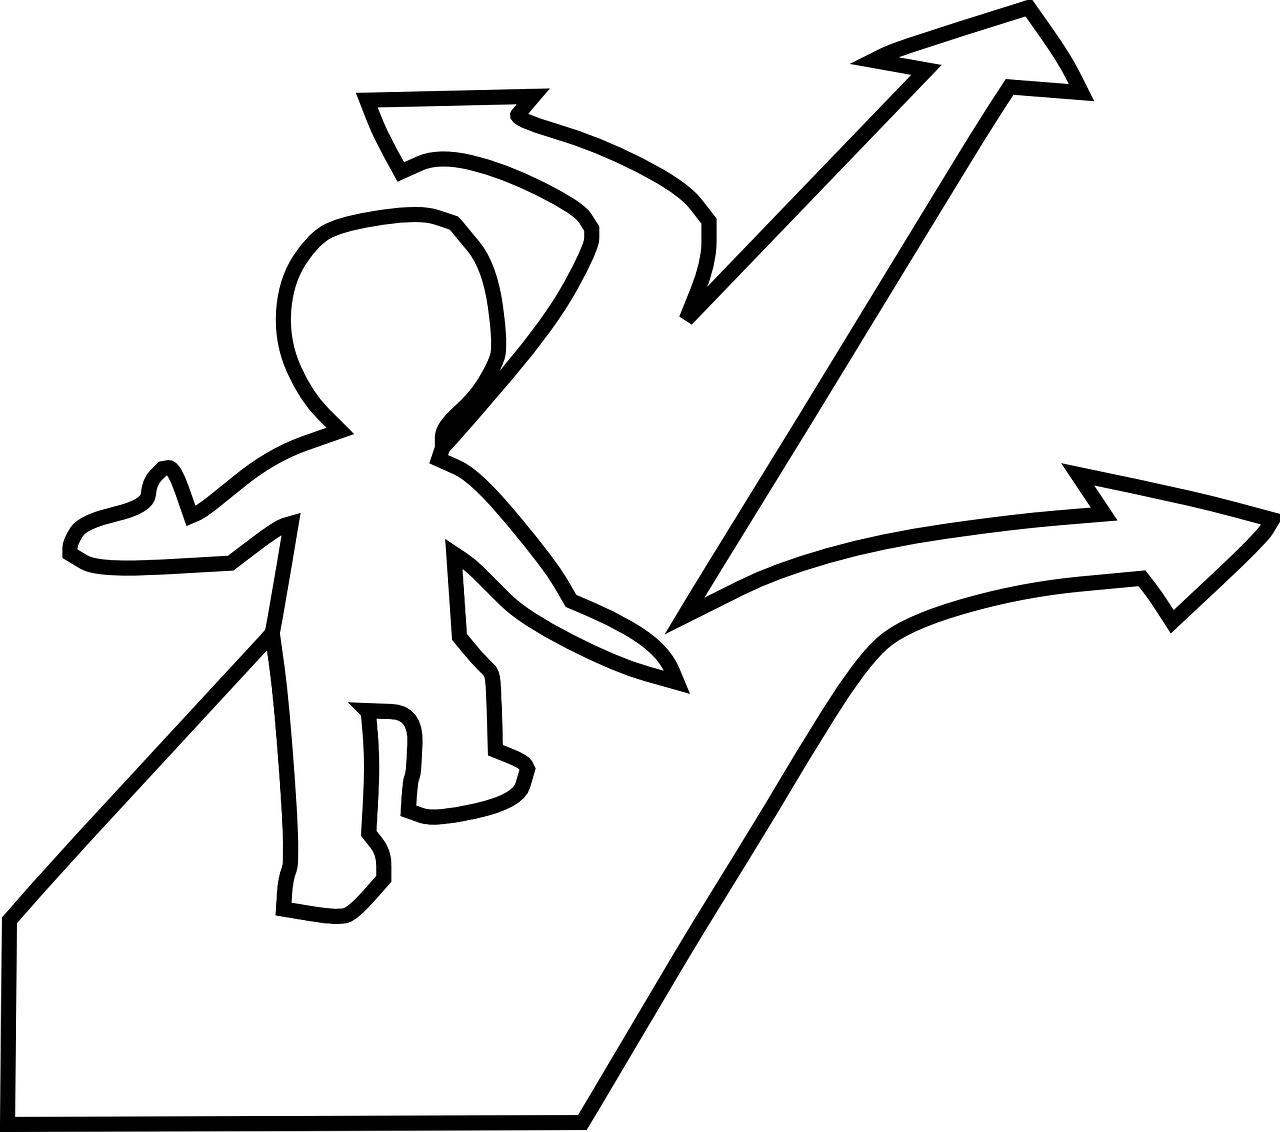 person with arrows pointing in different direction